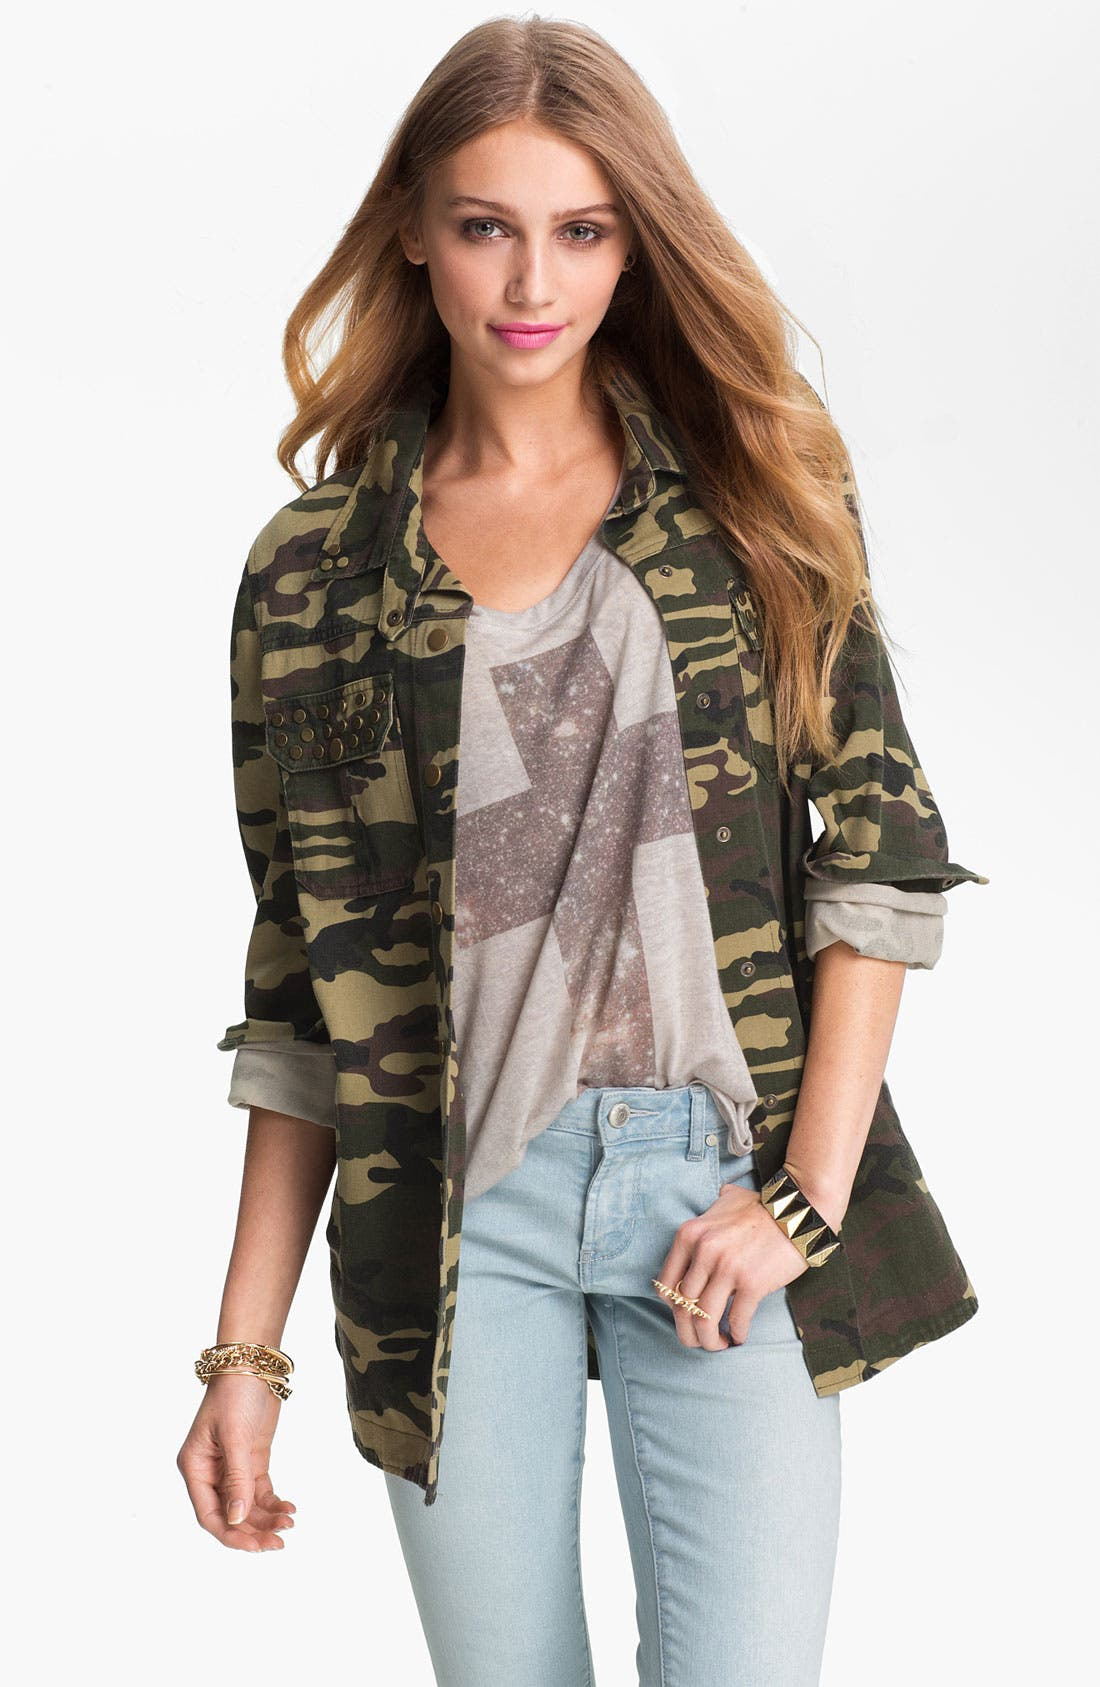 Alternate Image 1 Selected - Lush Studded Camo Print Army Jacket (Juniors)